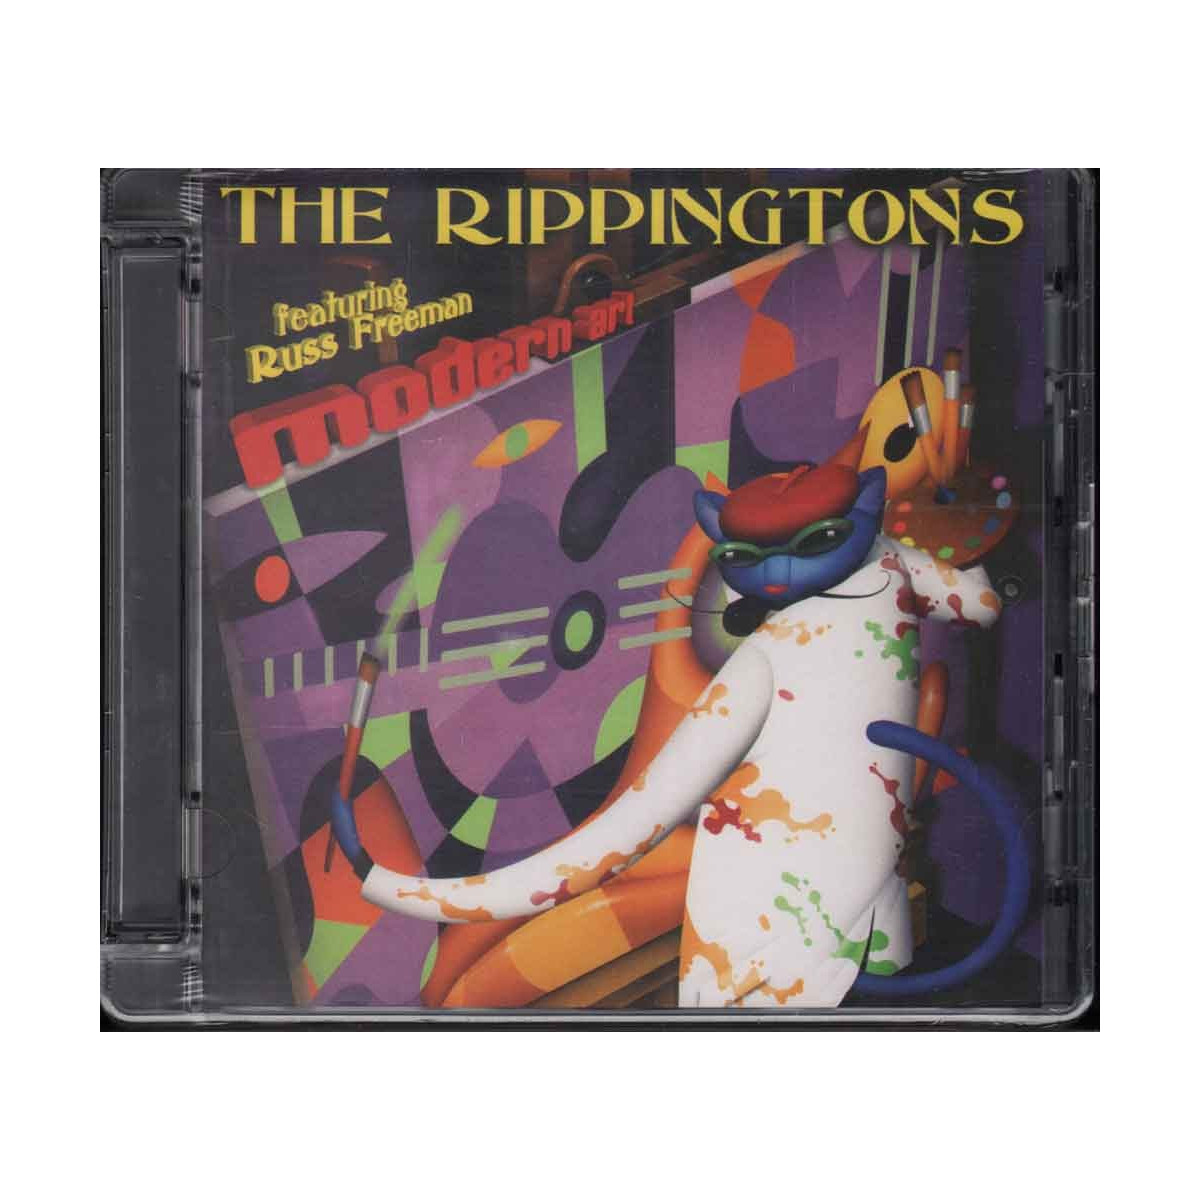 The Rippingtons Feat Russ Freeman CD Modern Art Sigillato 0888072306356